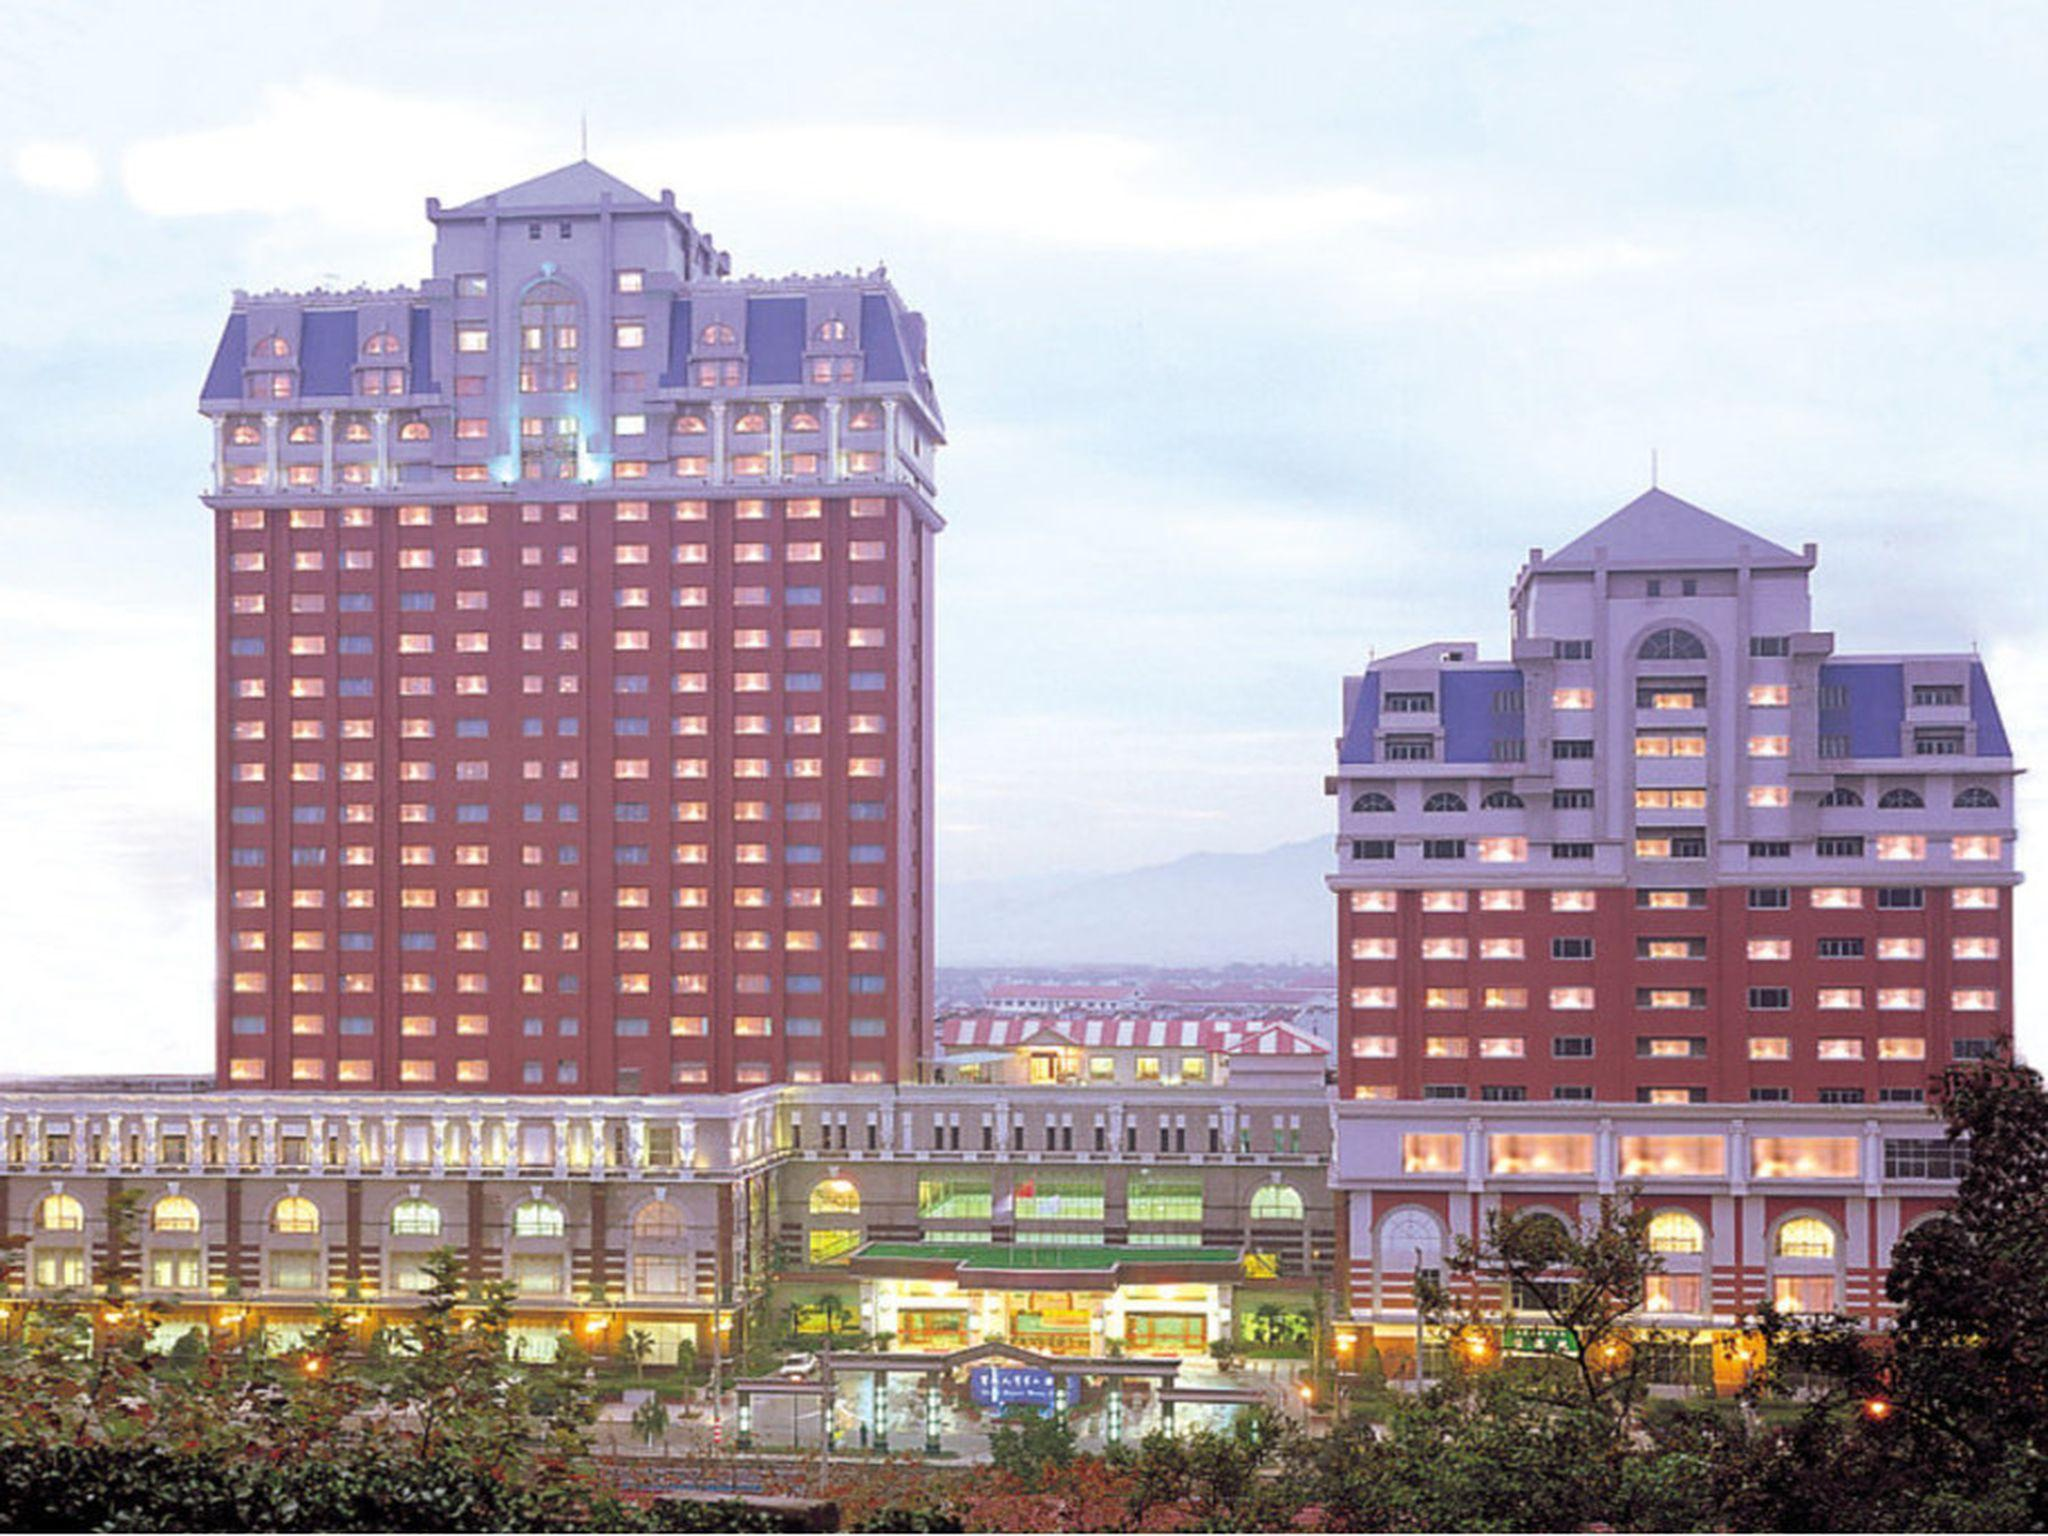 Yuyao grand pacific hotel yuyao district ningbo china for Pacific grand